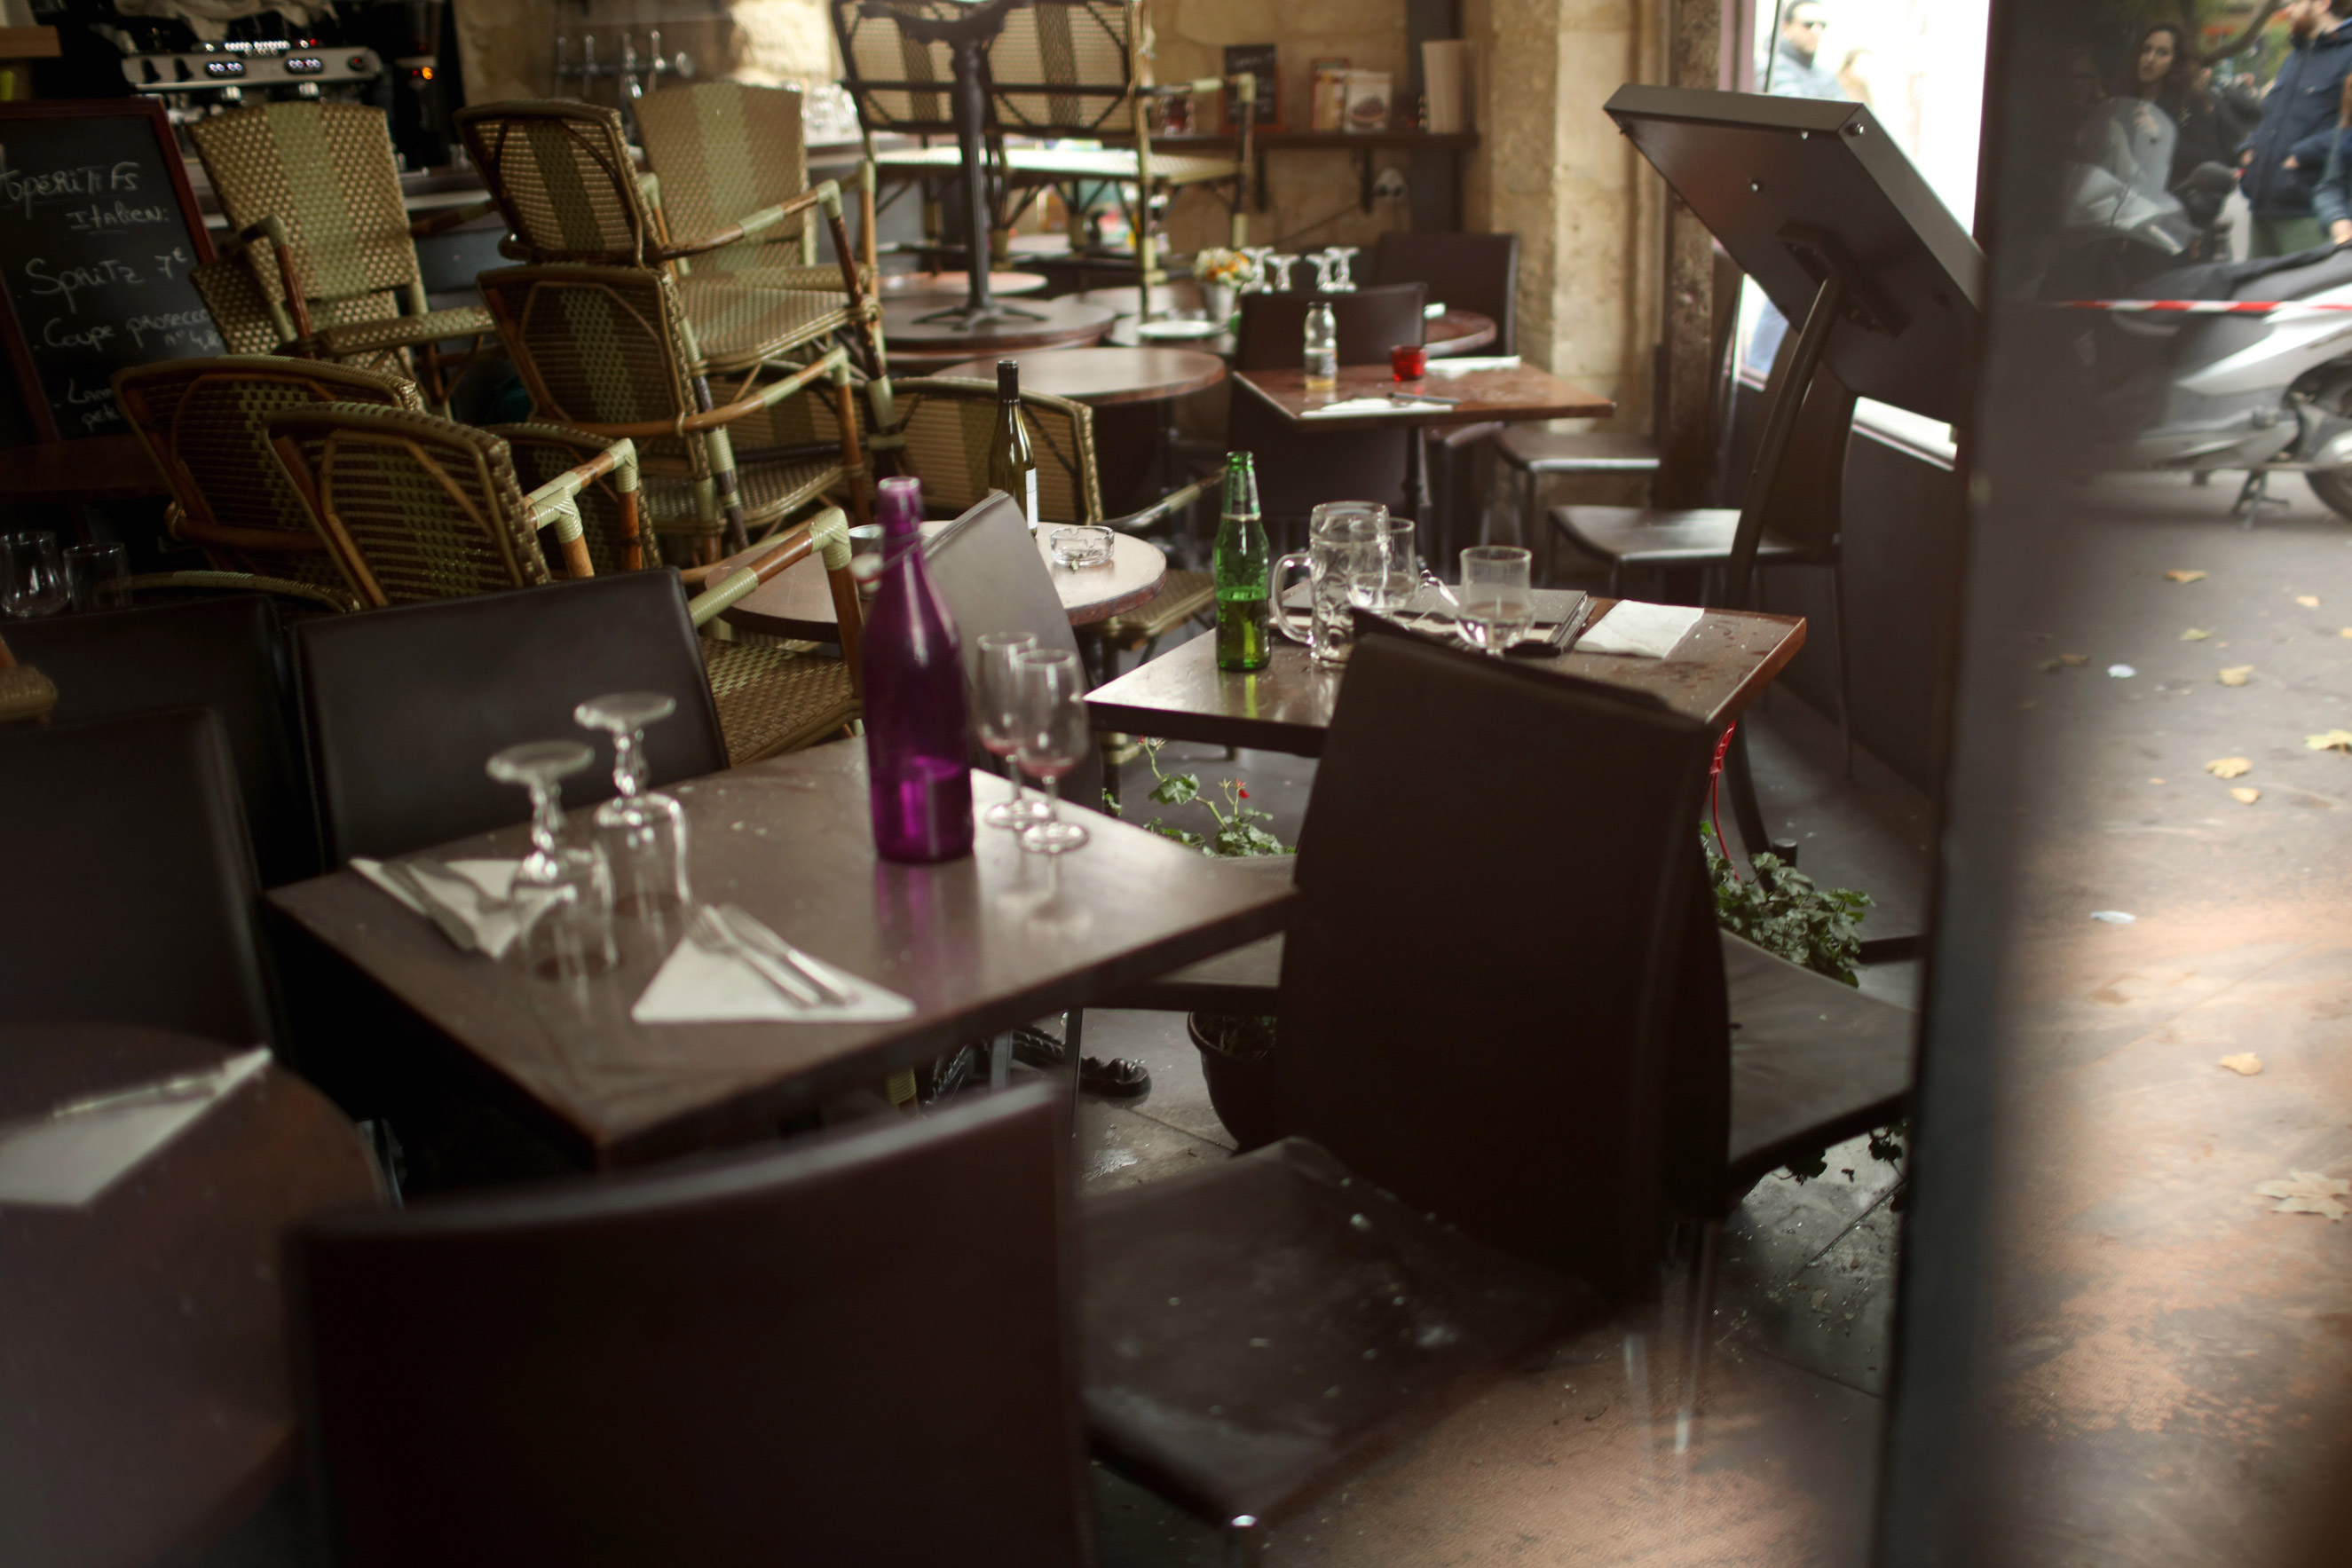 The interior of the Casa Nostra Cafe, the day after the attacks on the city, on Nov. 14, 2015 in Paris.